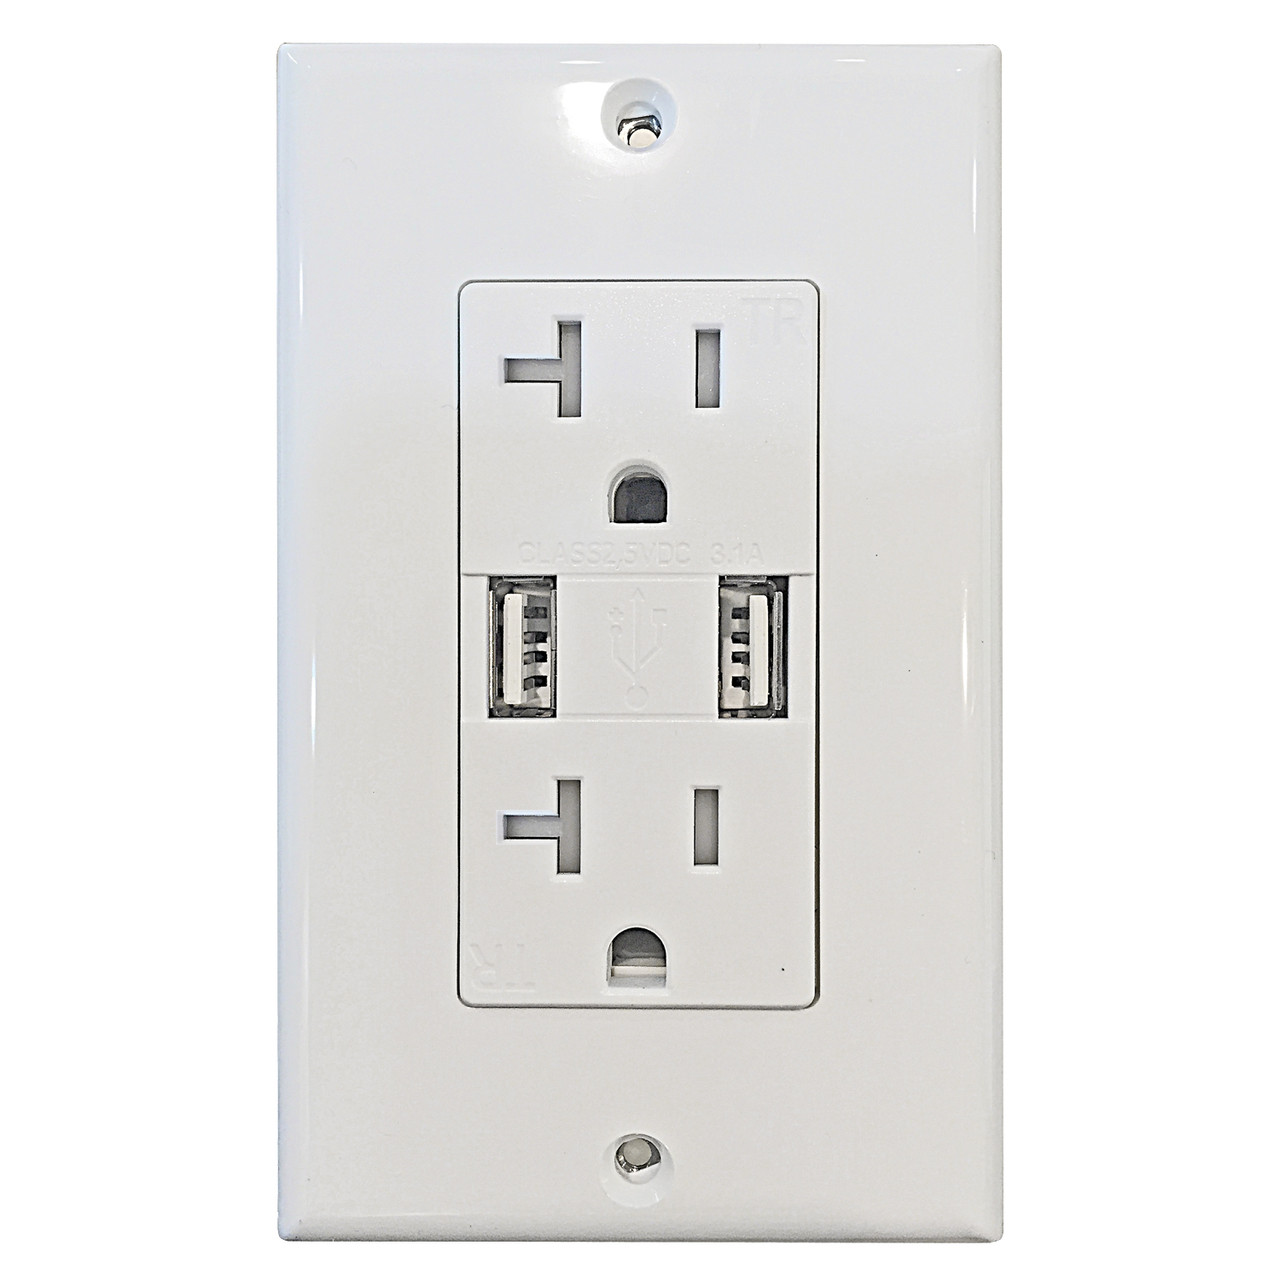 NEW 20A Tamper Resistant TR GFCI Outlet Receptacle 20 Amp ALMOND w//LED 1 pc